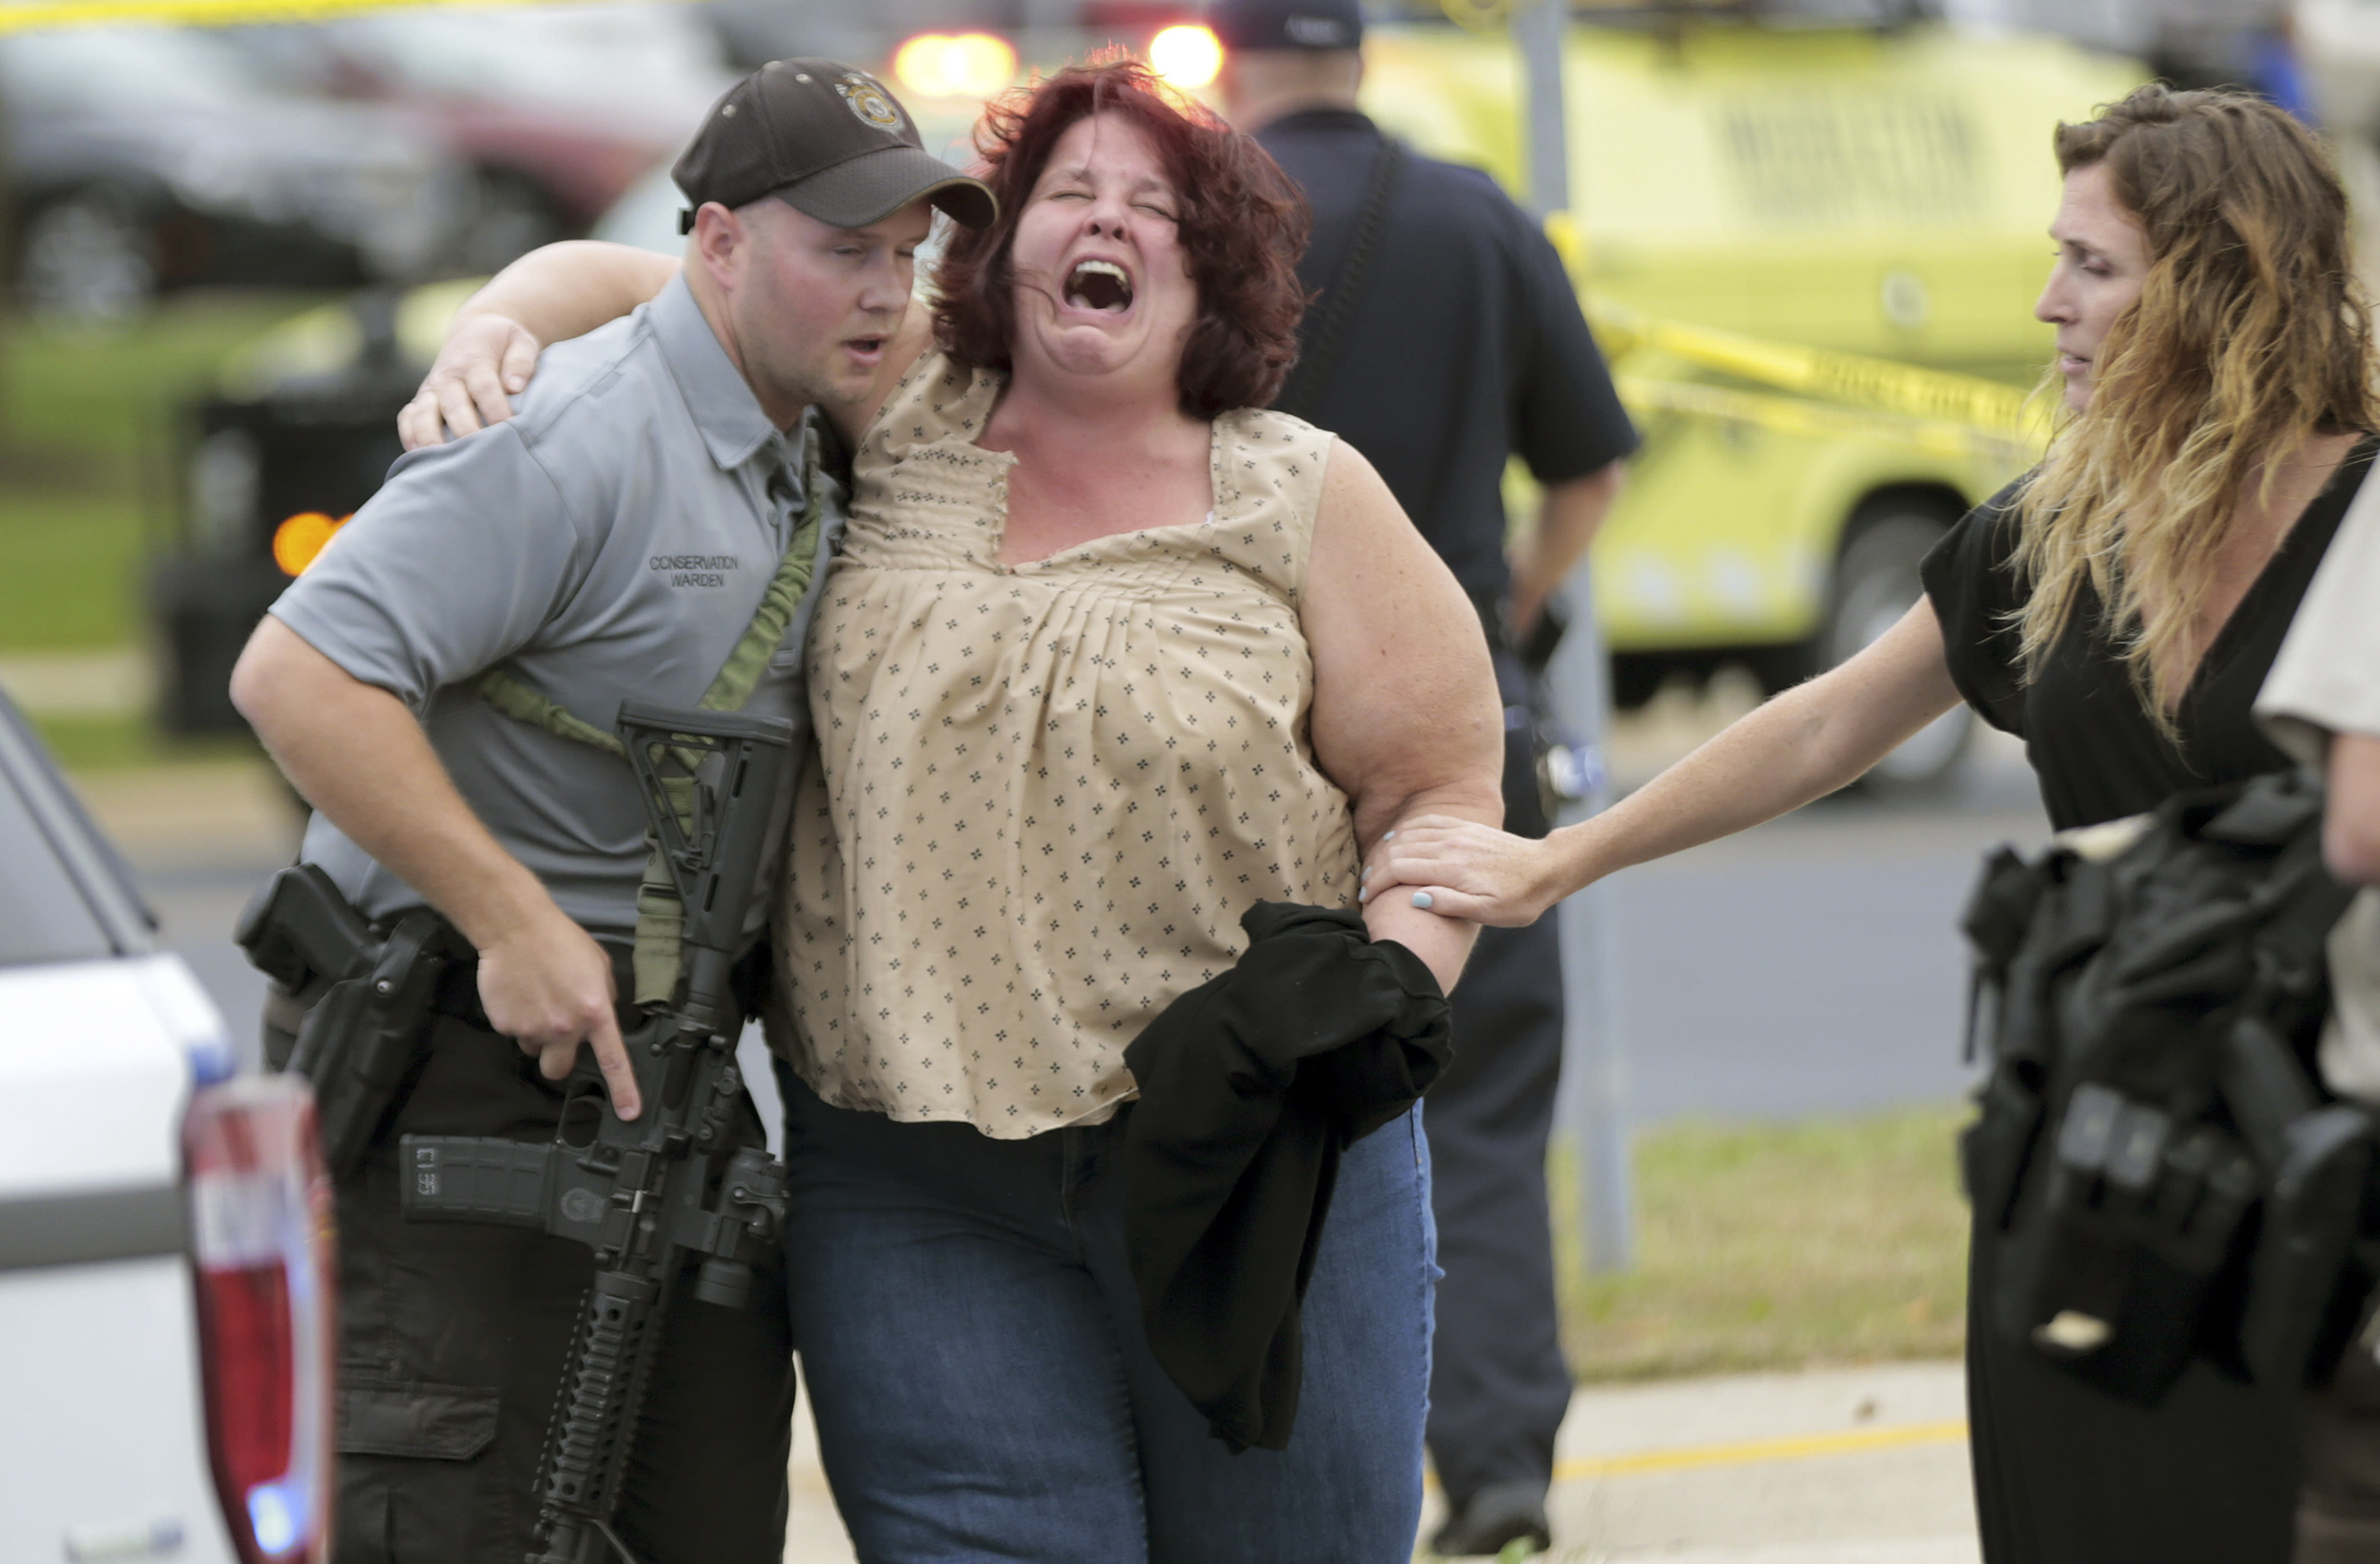 The Latest: Wisconsin workplace shooter dead, shot by police